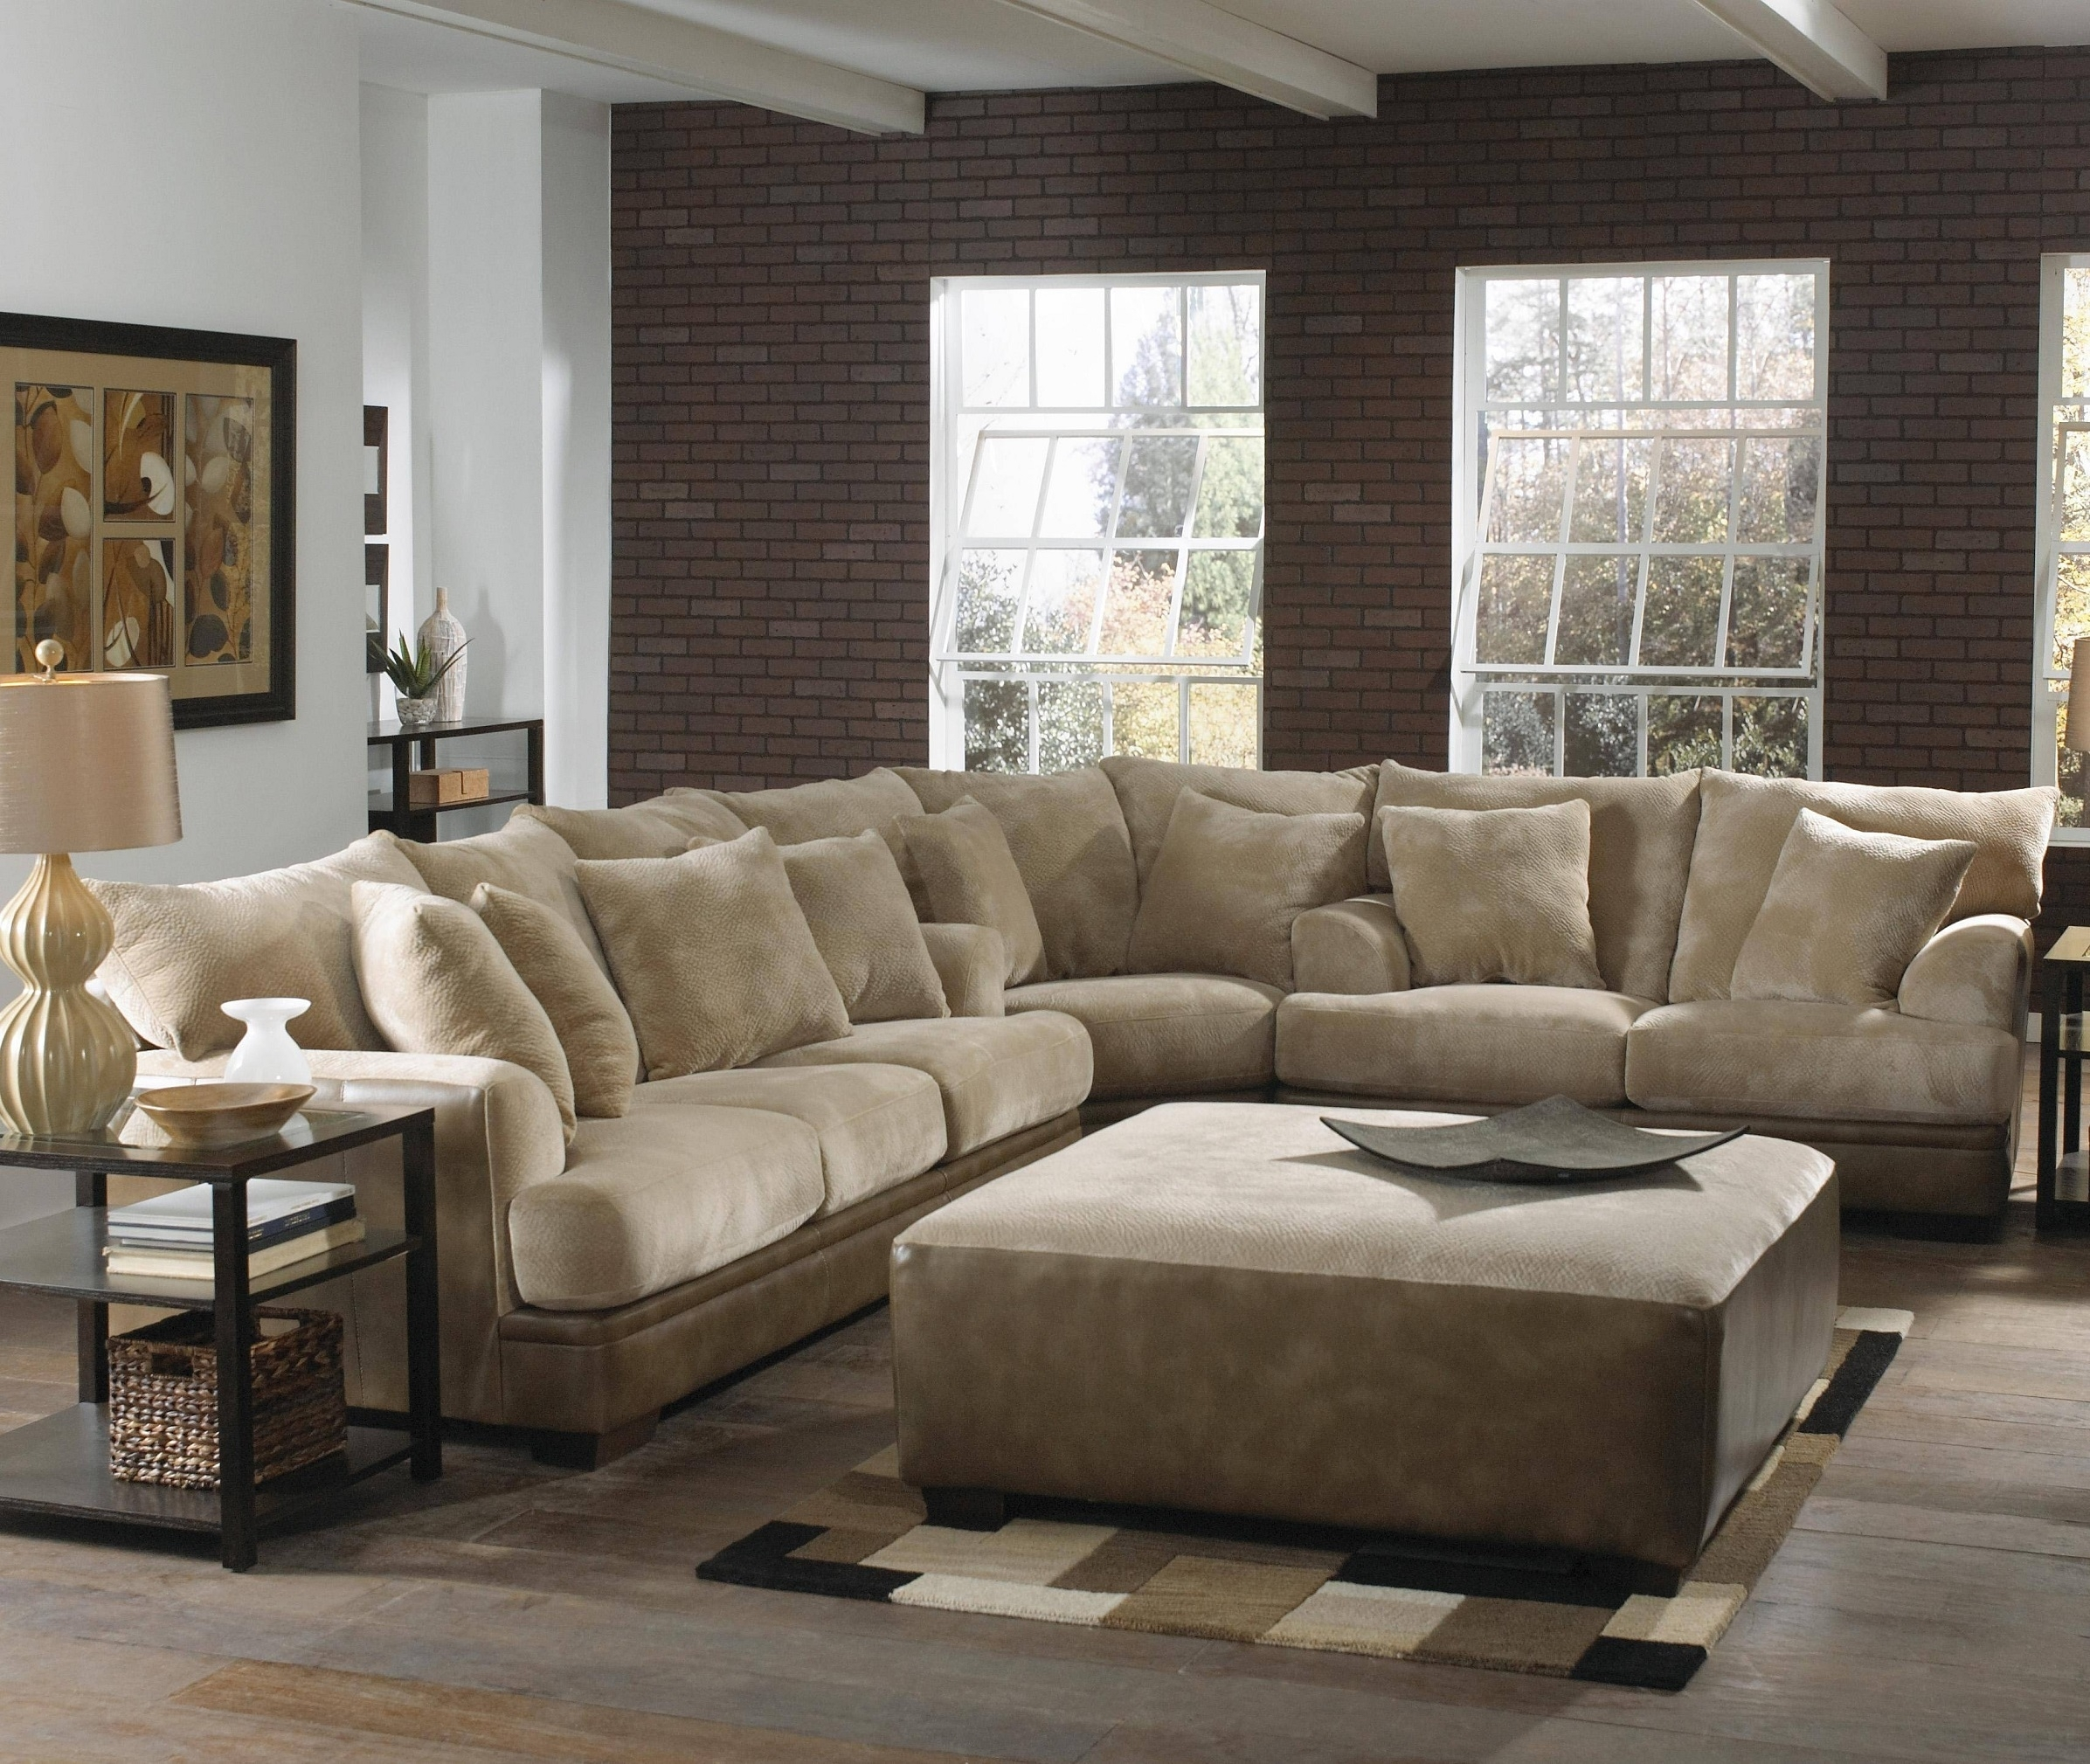 Chairs : Chairs Chair Classy Oversized Reading In Dark Brown Fabric With Grand Furniture Sectional Sofas (Image 3 of 10)